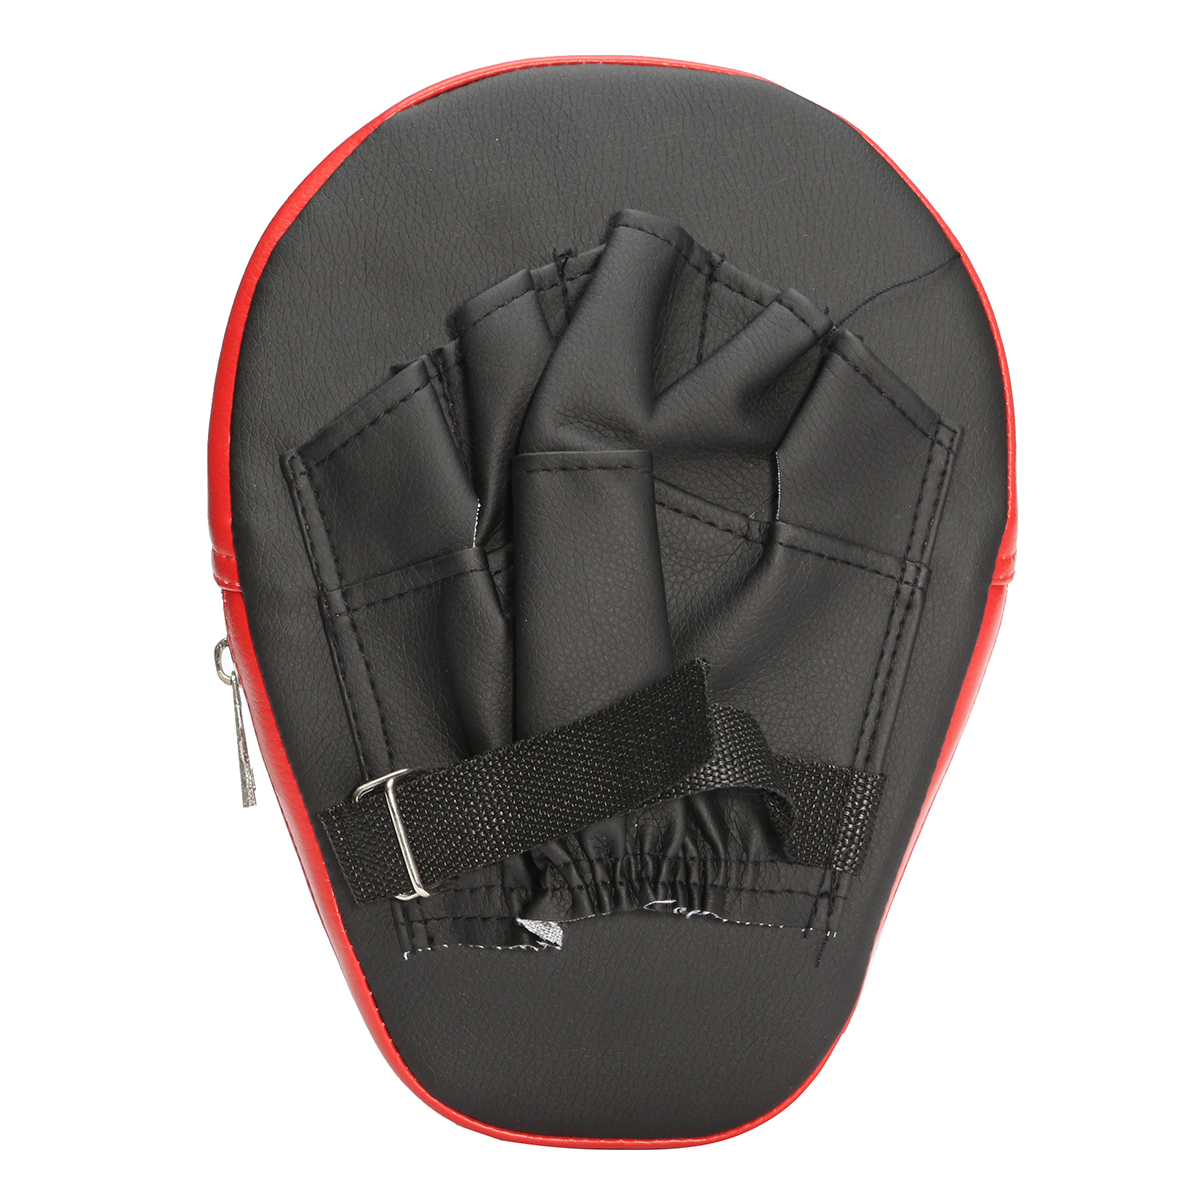 MMA Boxing Focus Punching Pad Hand Target Training Fight Boxing Gloves